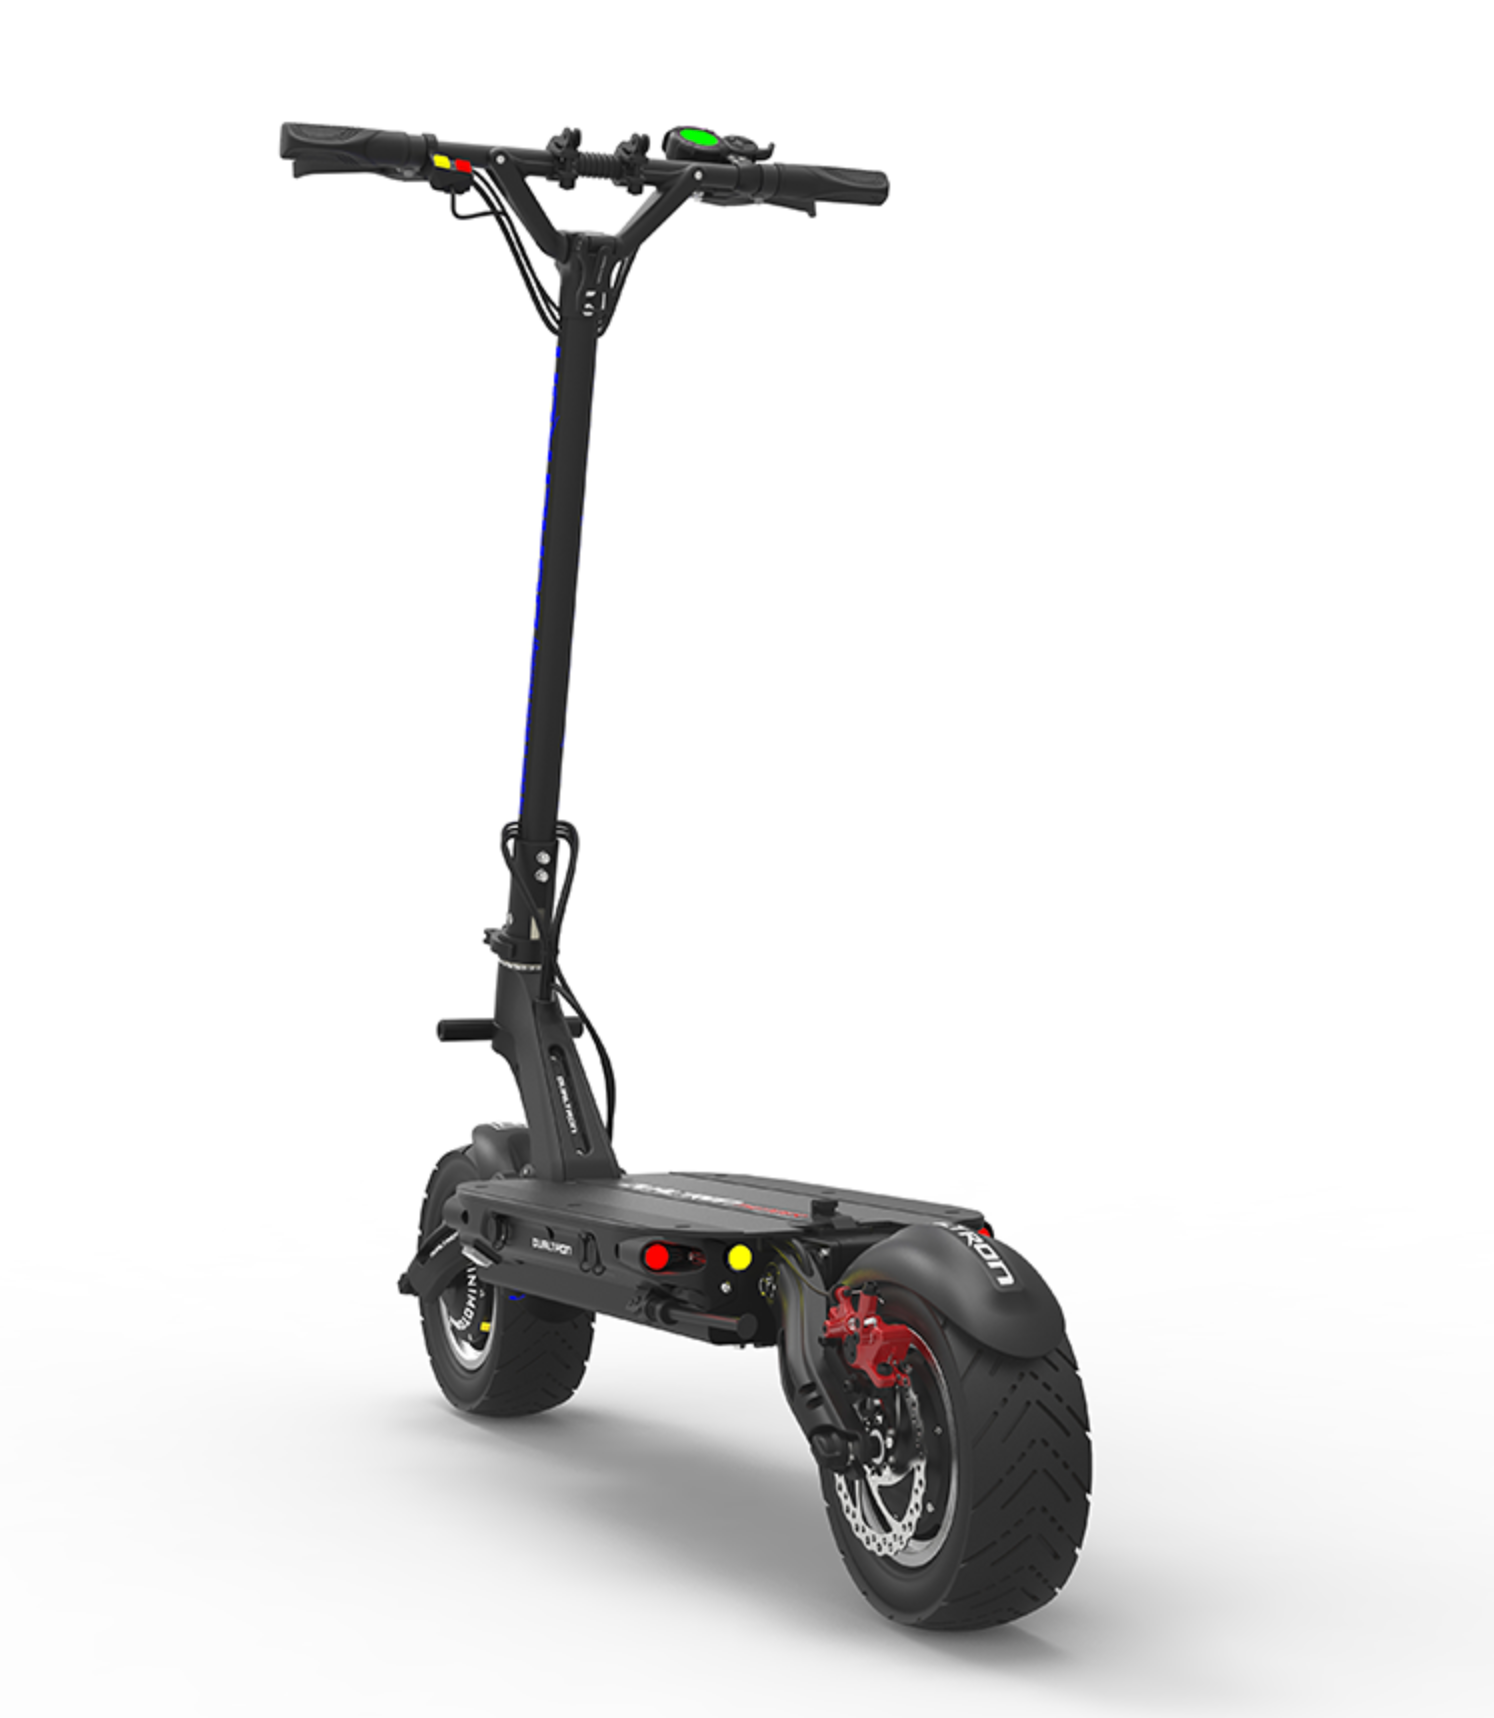 Dualtron Thunder Electric Scooter Rear View Image